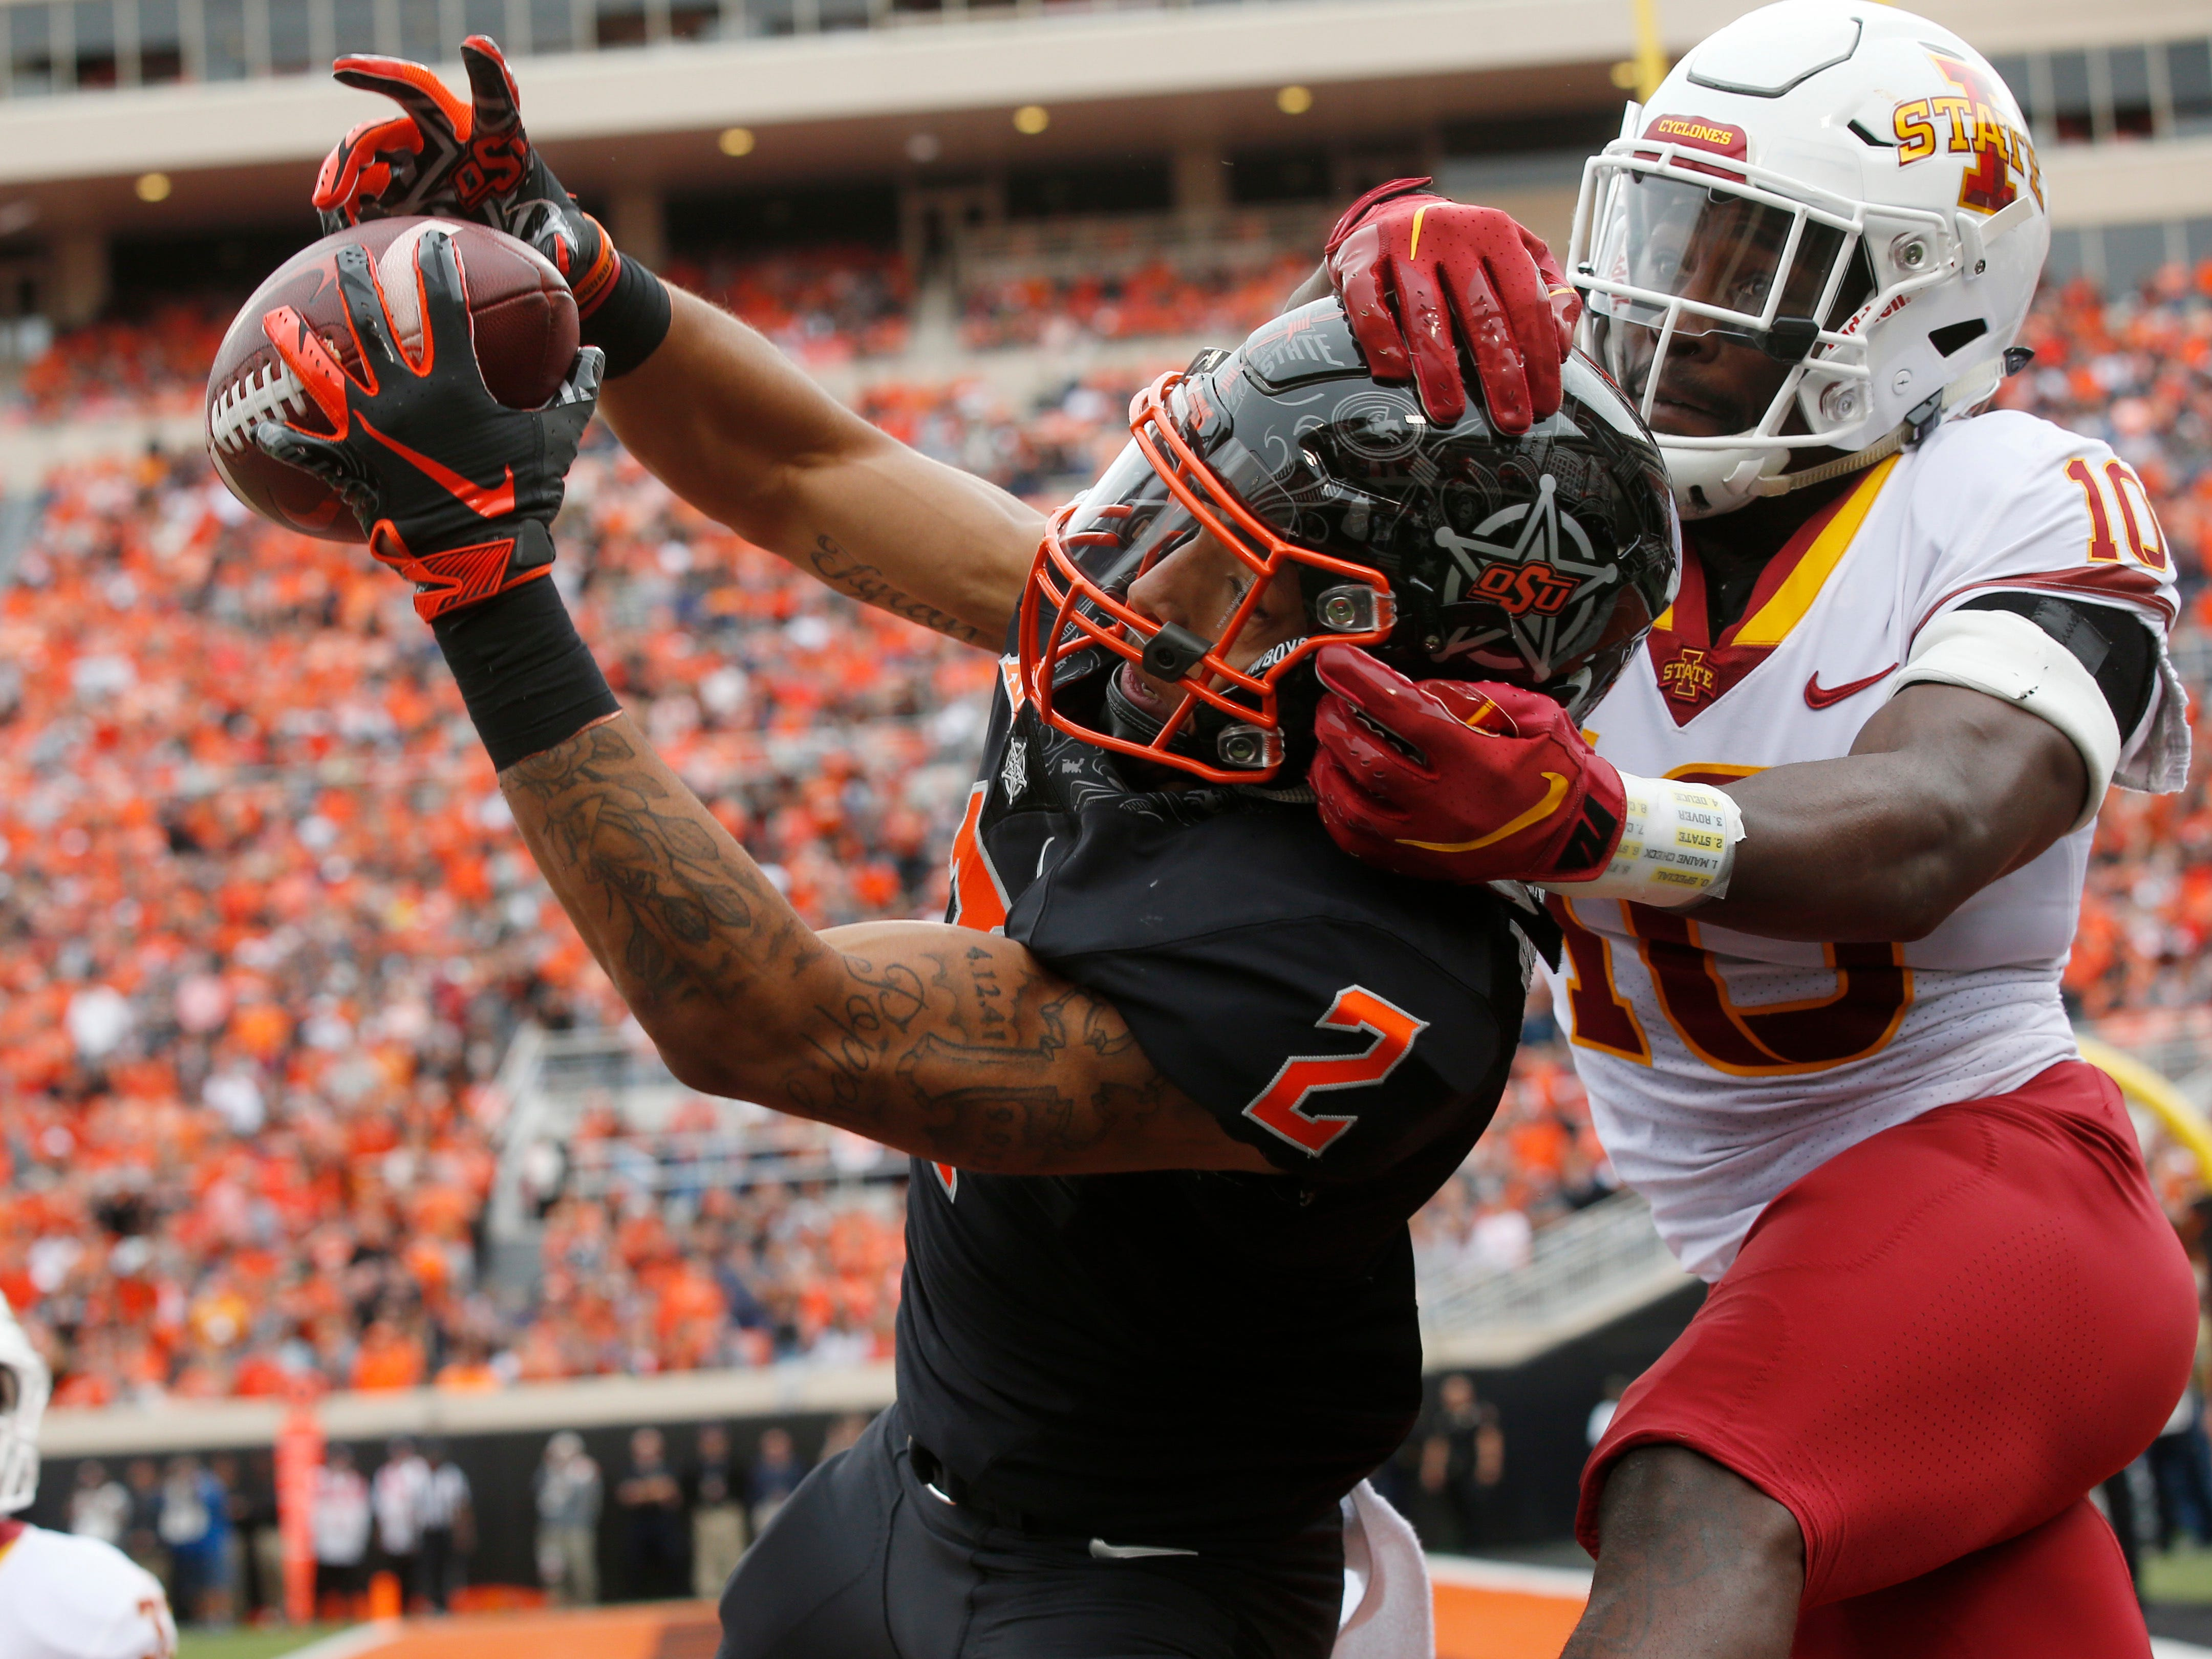 Oklahoma State wide receiver Tylan Wallace (2) reaches for but can't hold onto the pass as he is defended by Iowa State defensive back Brian Peavy (10) in the first half of an NCAA college football game in Stillwater, Okla., Saturday, Oct. 6, 2018.